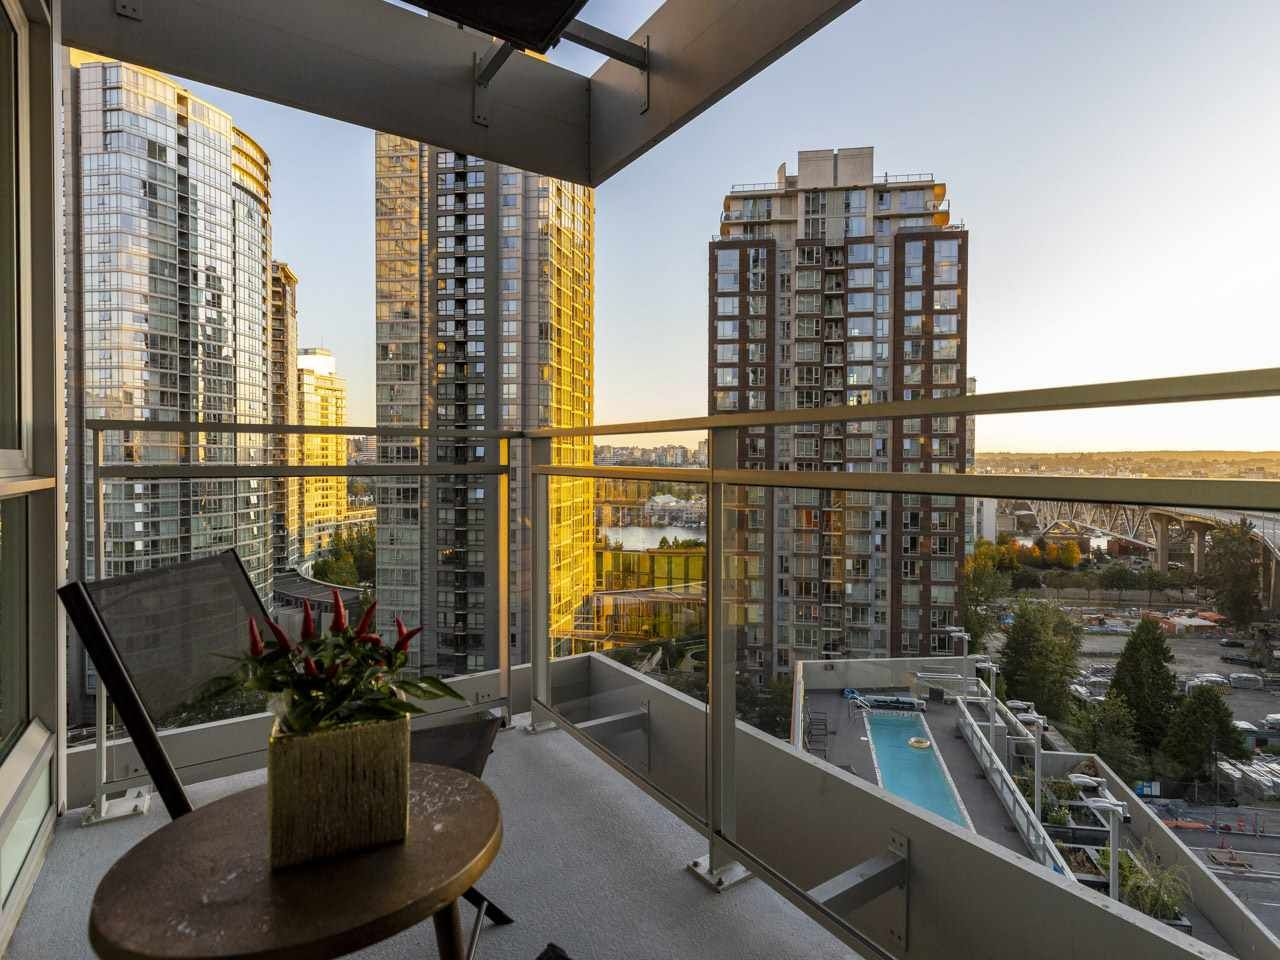 """Main Photo: 1507 1372 SEYMOUR Street in Vancouver: Downtown VW Condo for sale in """"The Mark"""" (Vancouver West)  : MLS®# R2402457"""